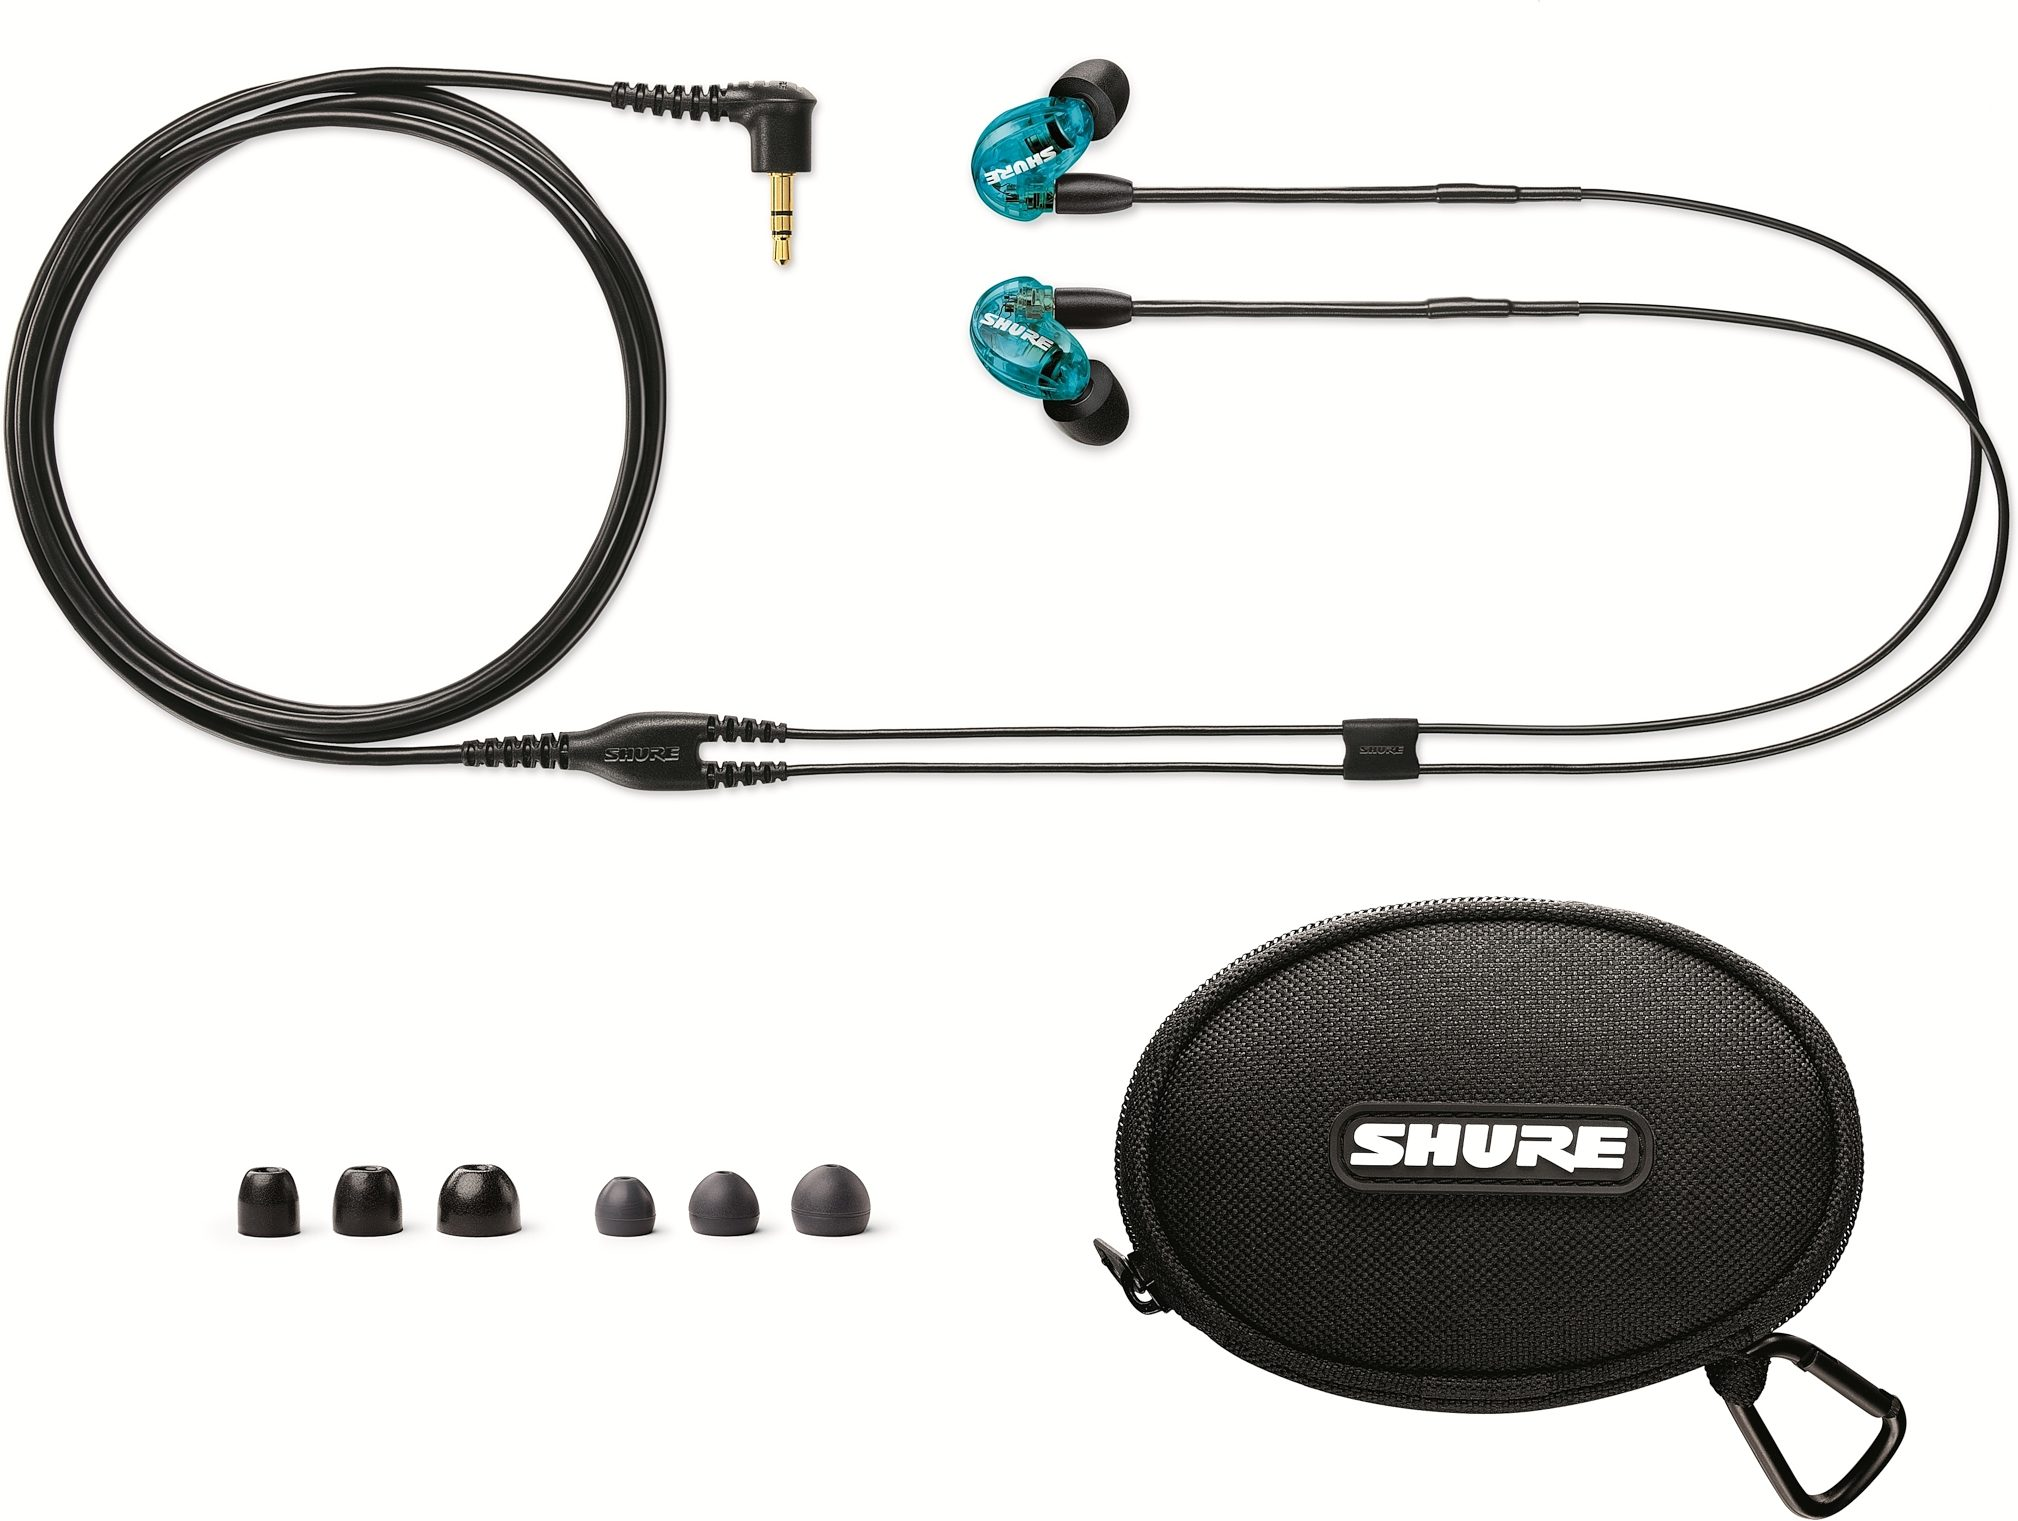 shure 215 special edition review